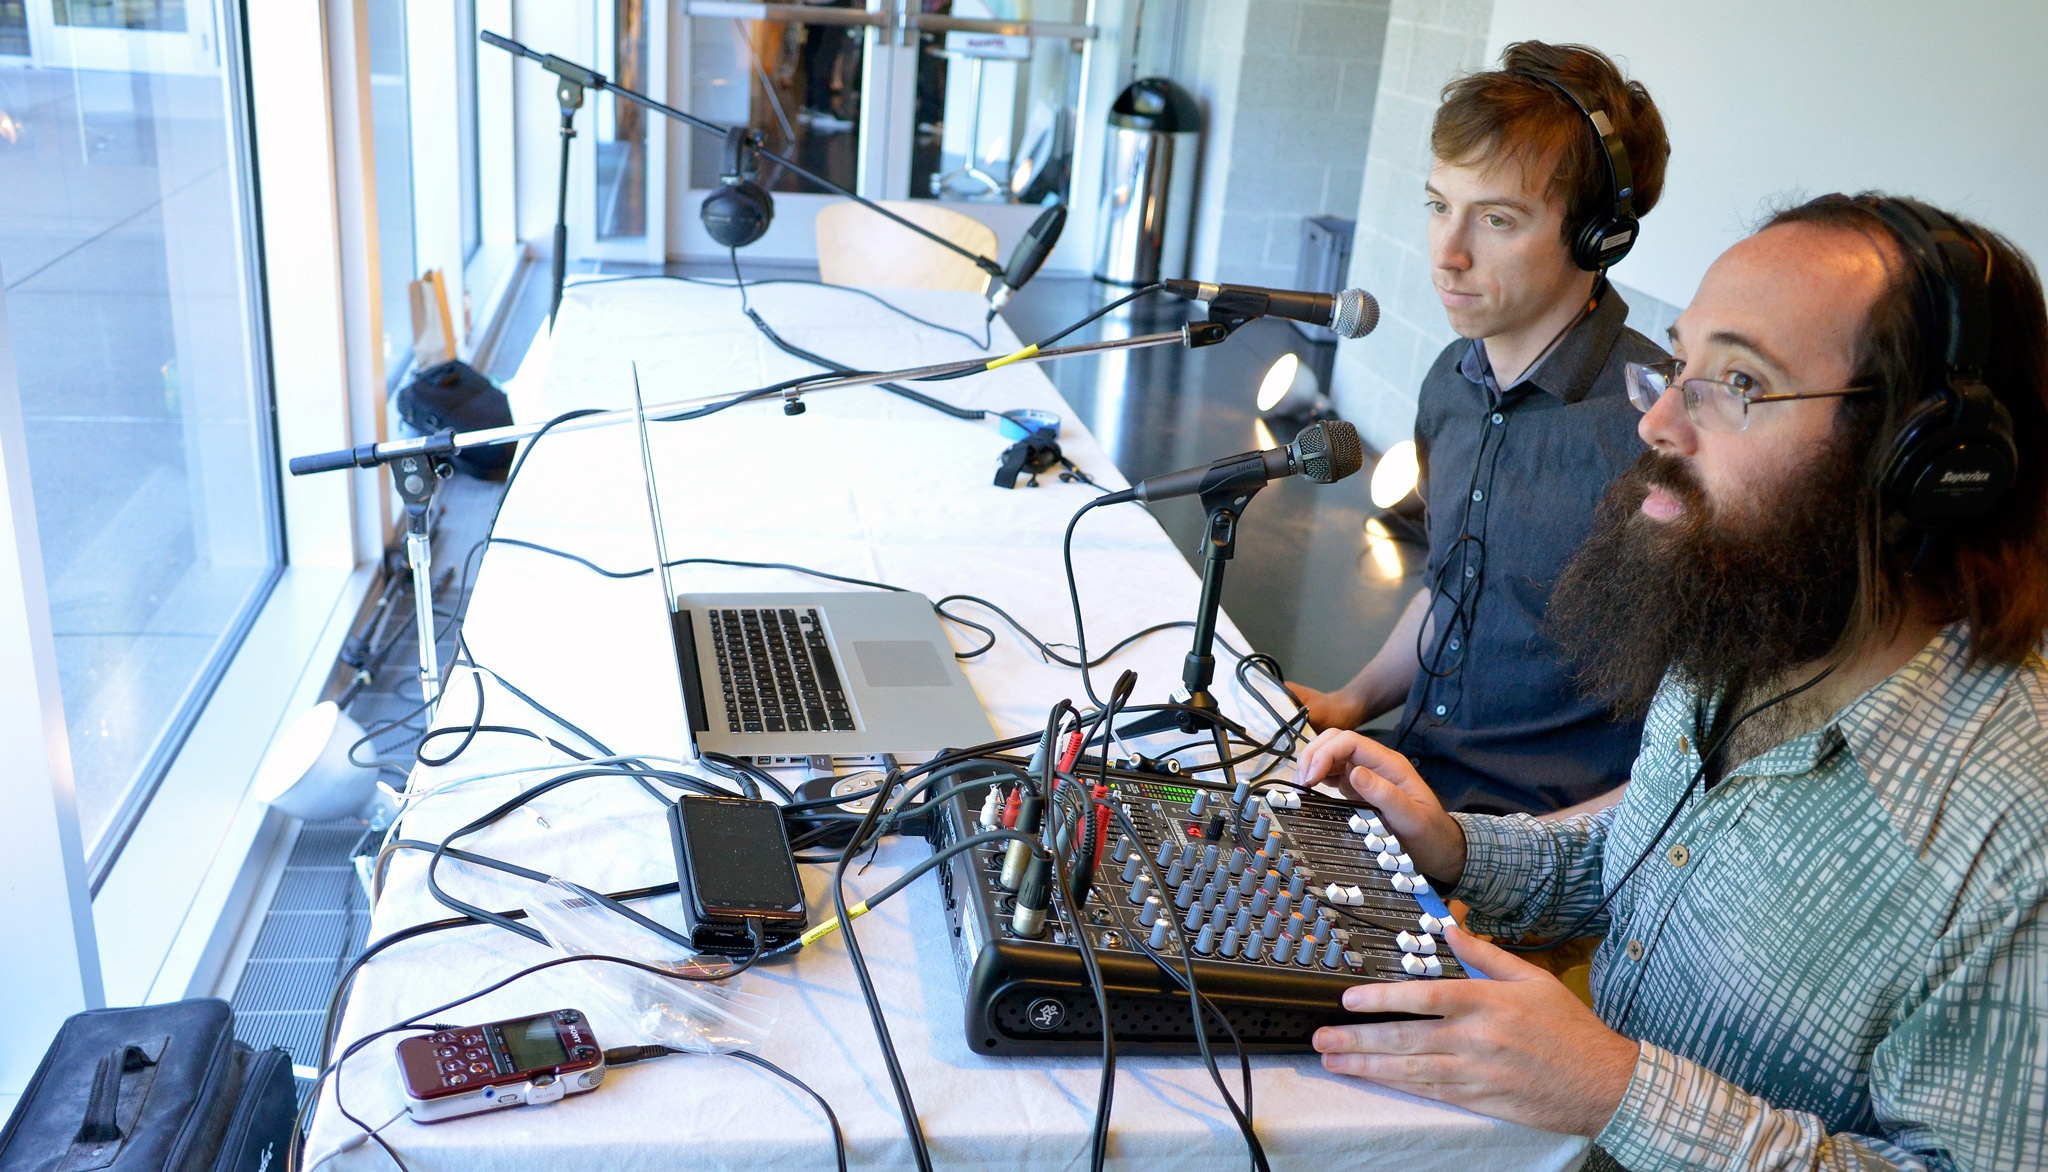 Two white men, one older and one younger, sit at a white table with mic stands and a sound board facing a wall of windows.